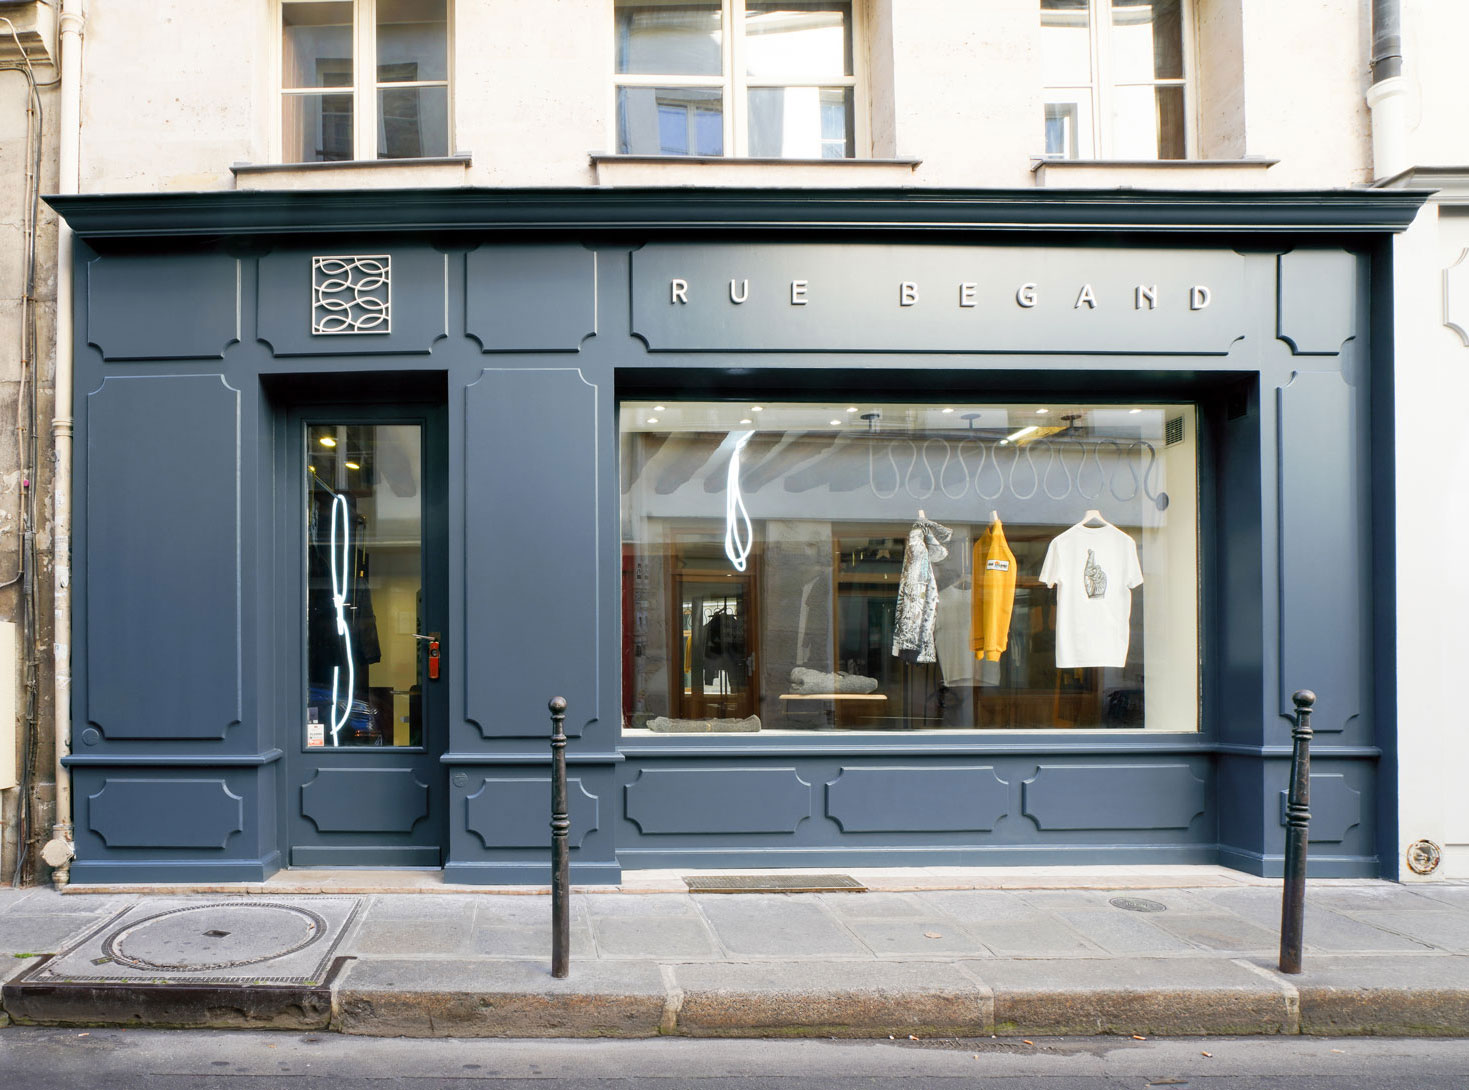 SHOP – Rue Begand